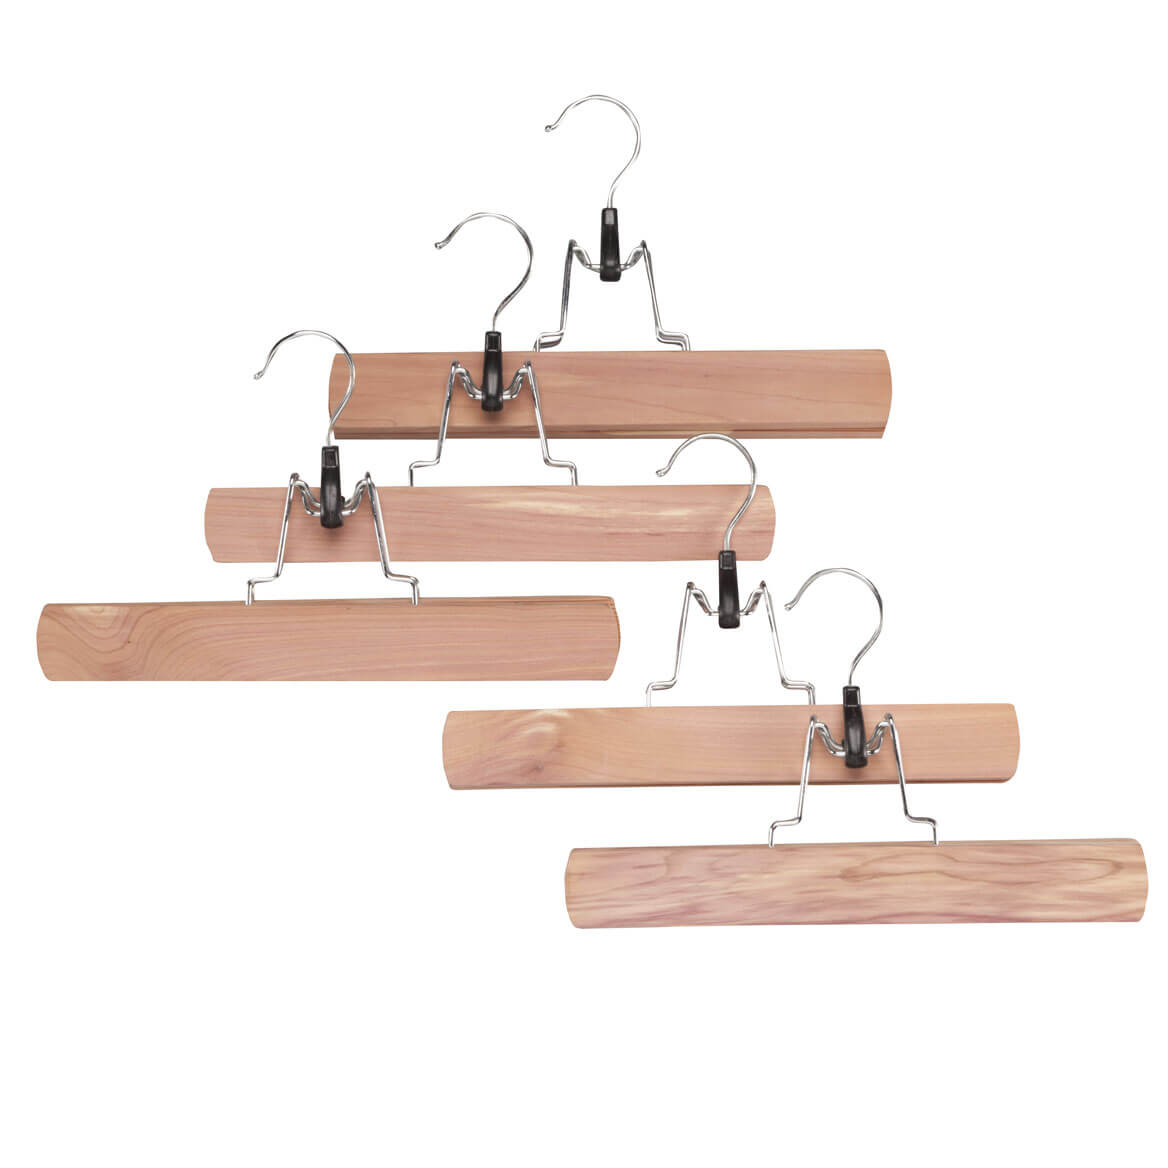 Cedar Pant Hangers by OakRidge Accents�, Set of 5 - Miles Kimball